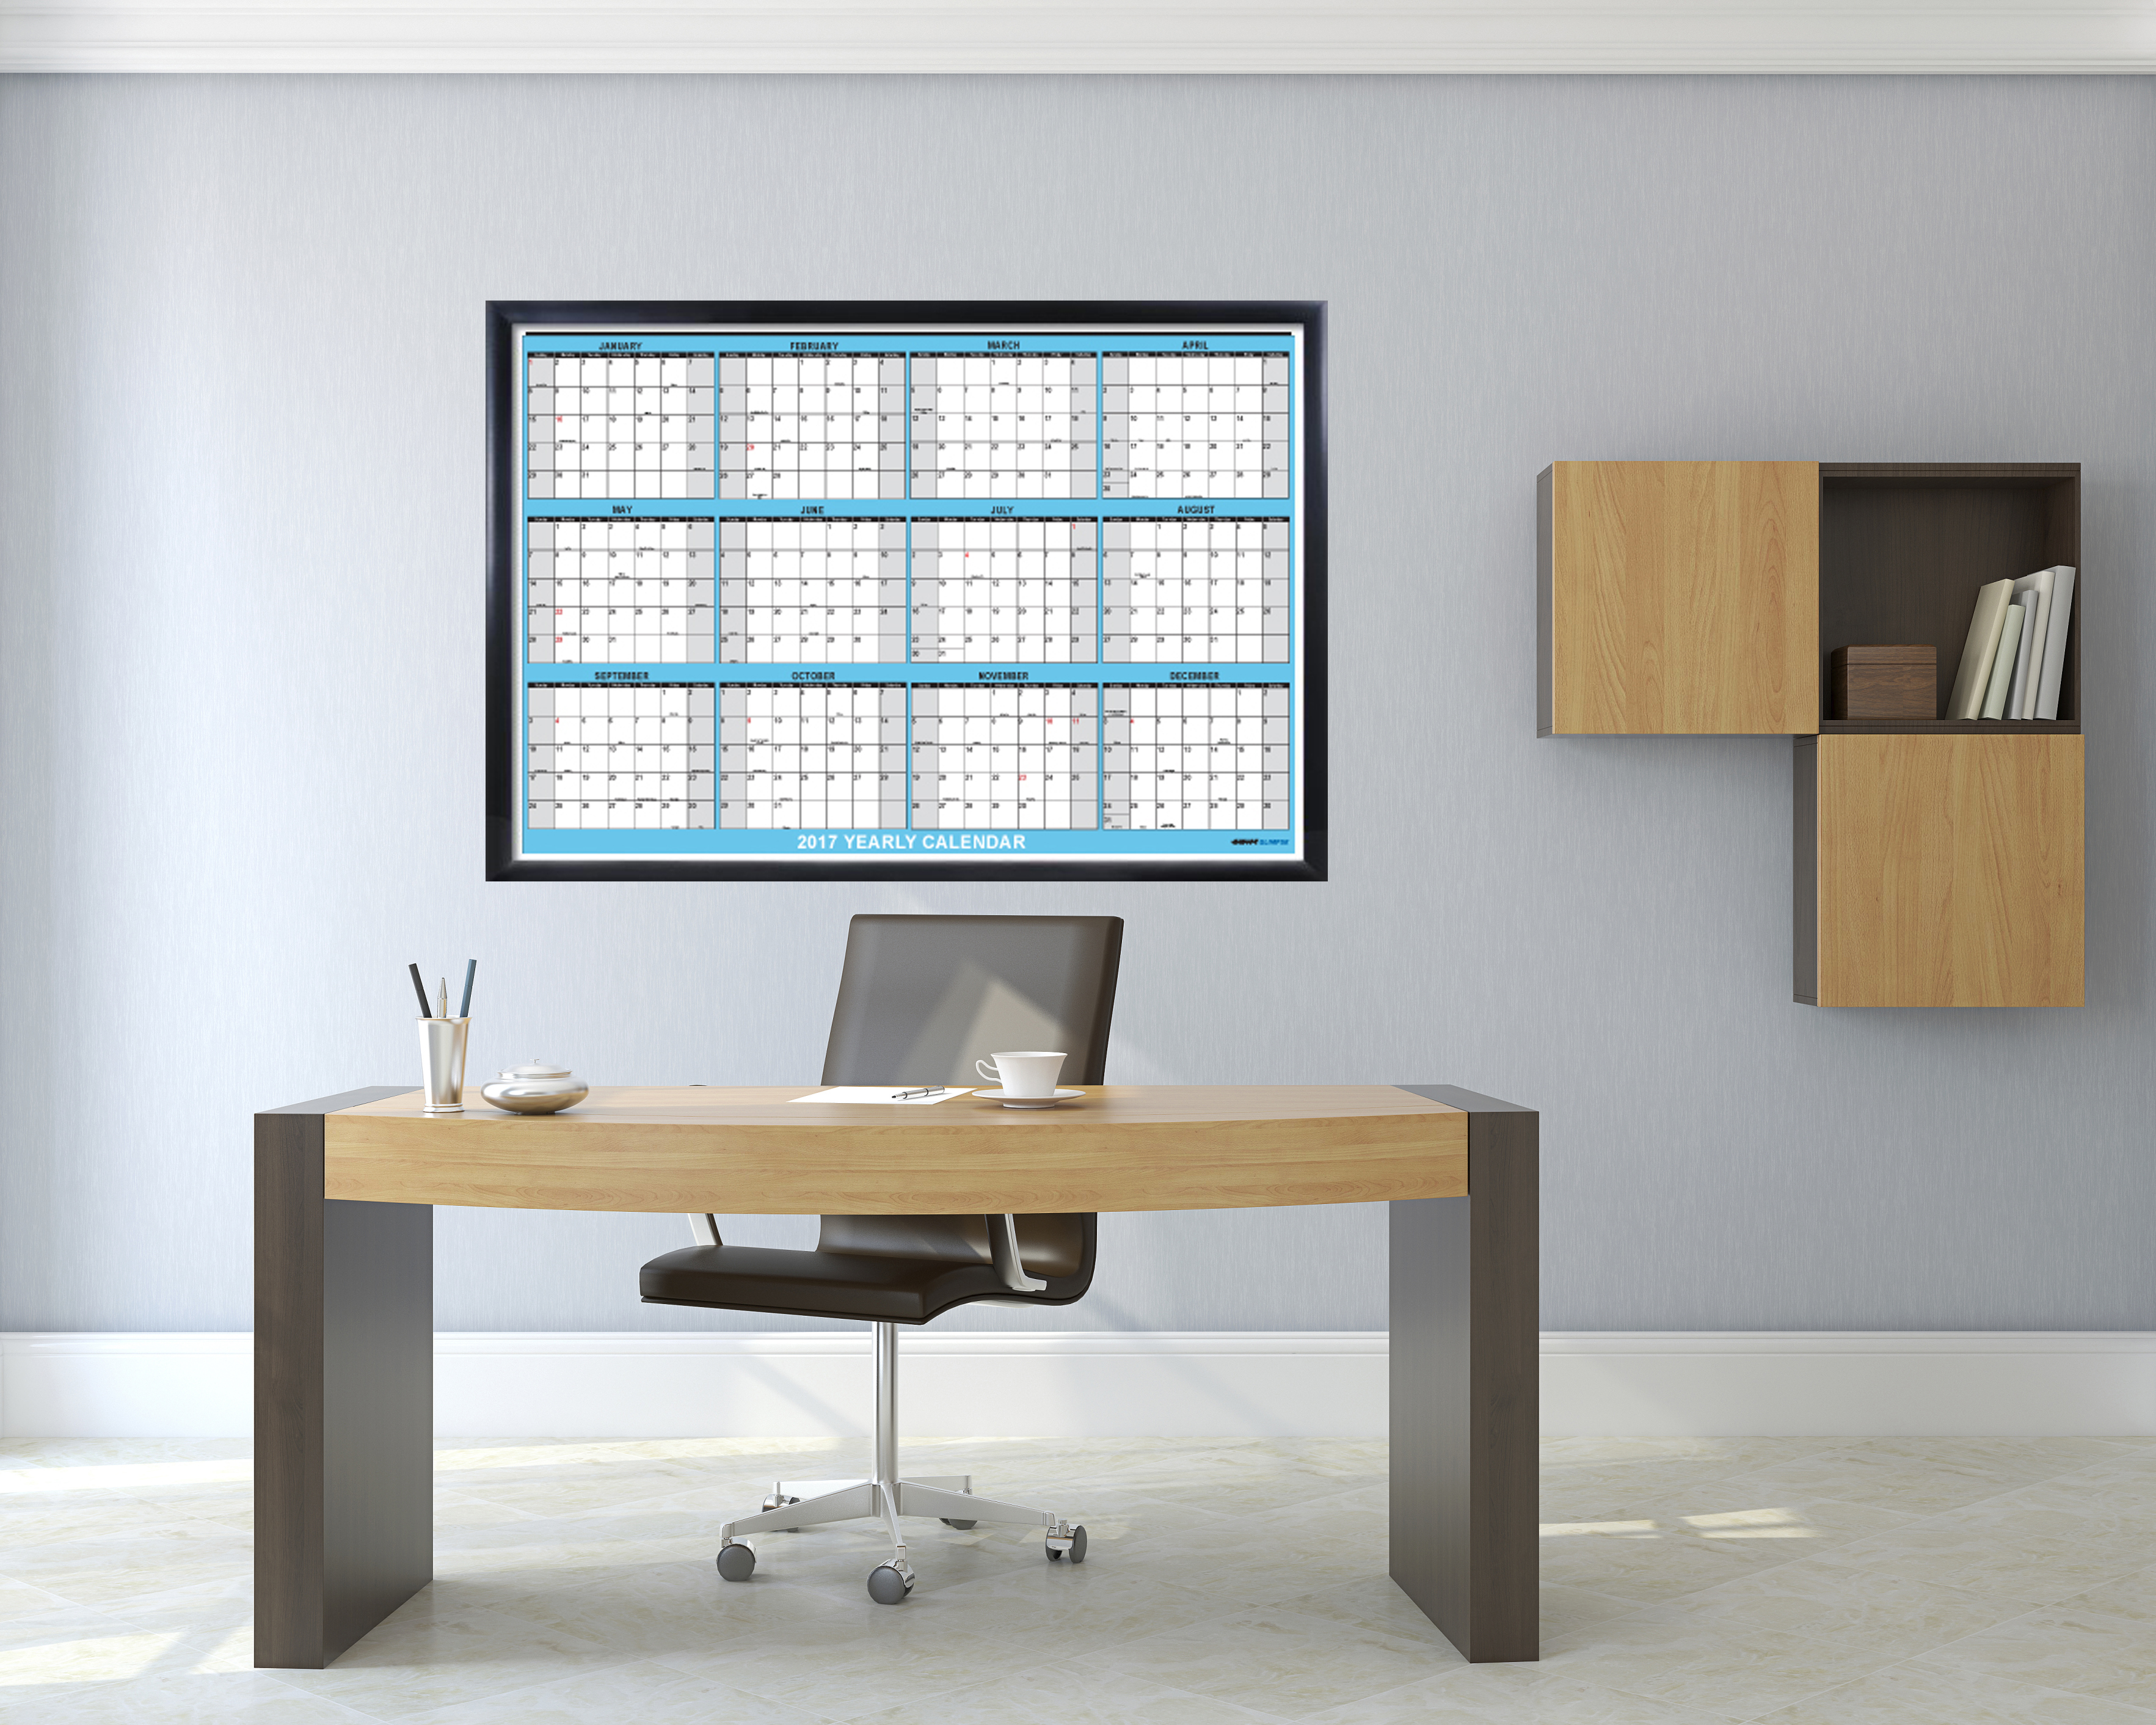 Office Calendar Wall : Yearly wall calendar month horizontal planning at